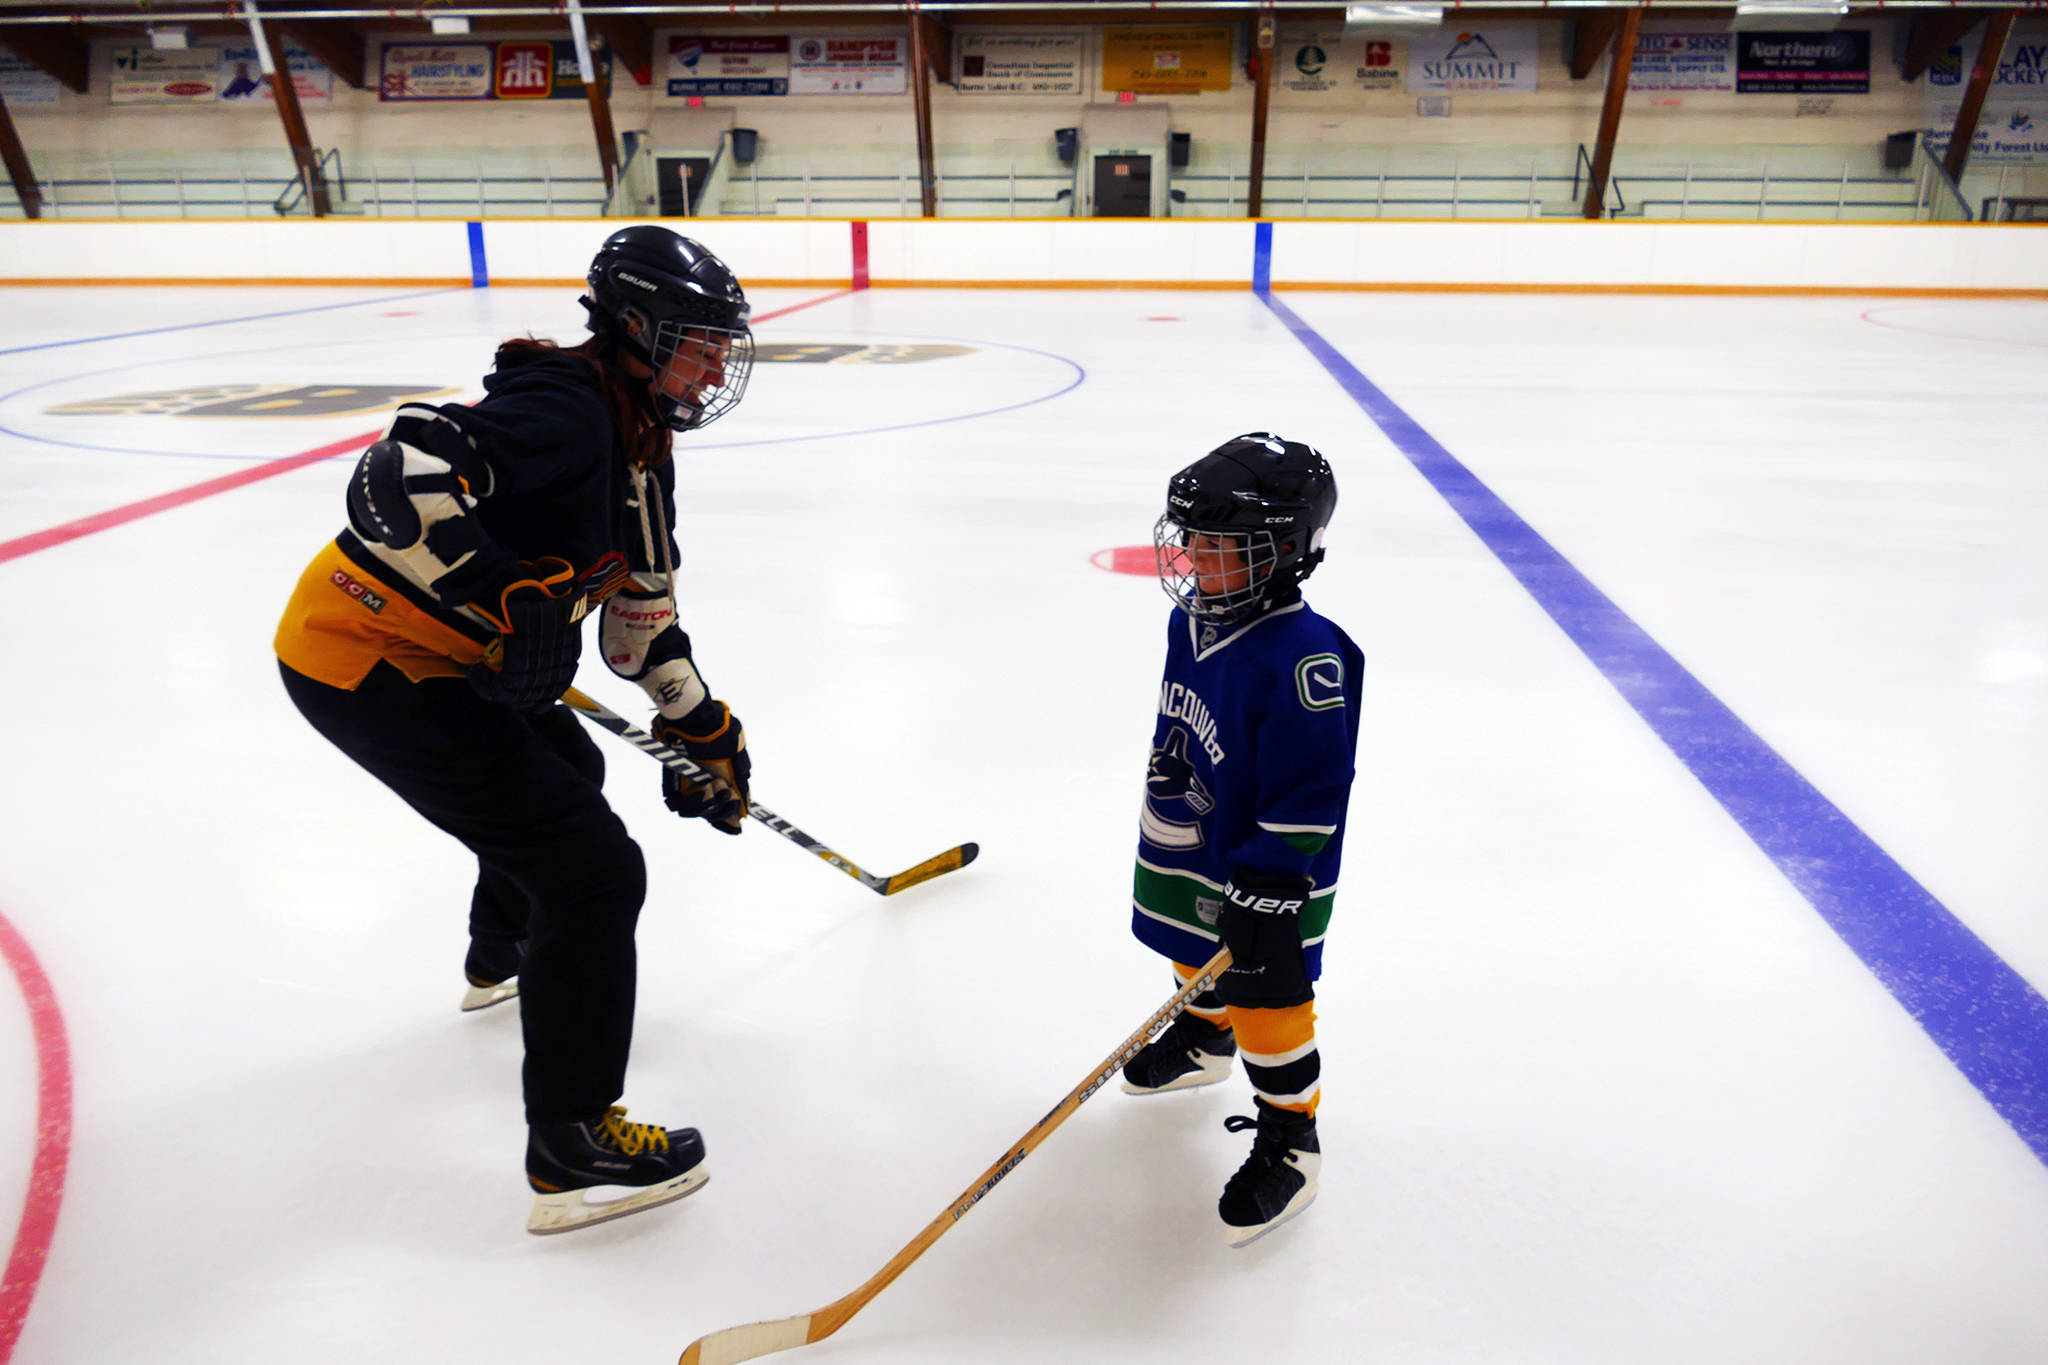 Burns Lake Minor Hockey IP group started practice last week with Coach Sarah Green. (Priyanka Ketkar - Lakes District News)